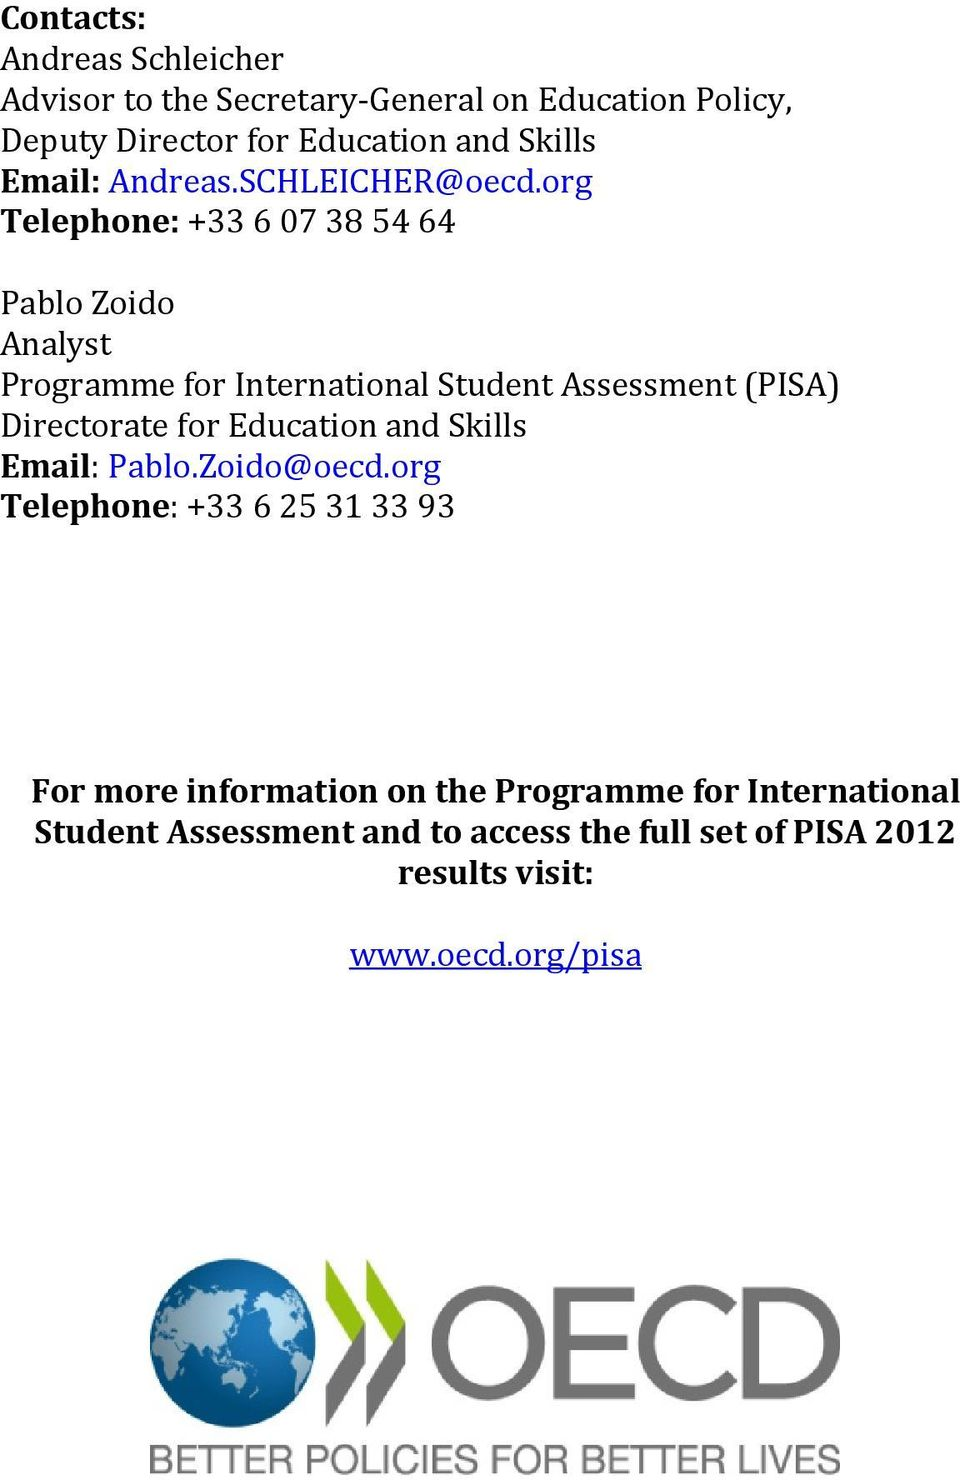 org Telephone: +33 6 07 38 54 64 Pablo Zoido Analyst Programme for International Student Assessment (PISA) Directorate for